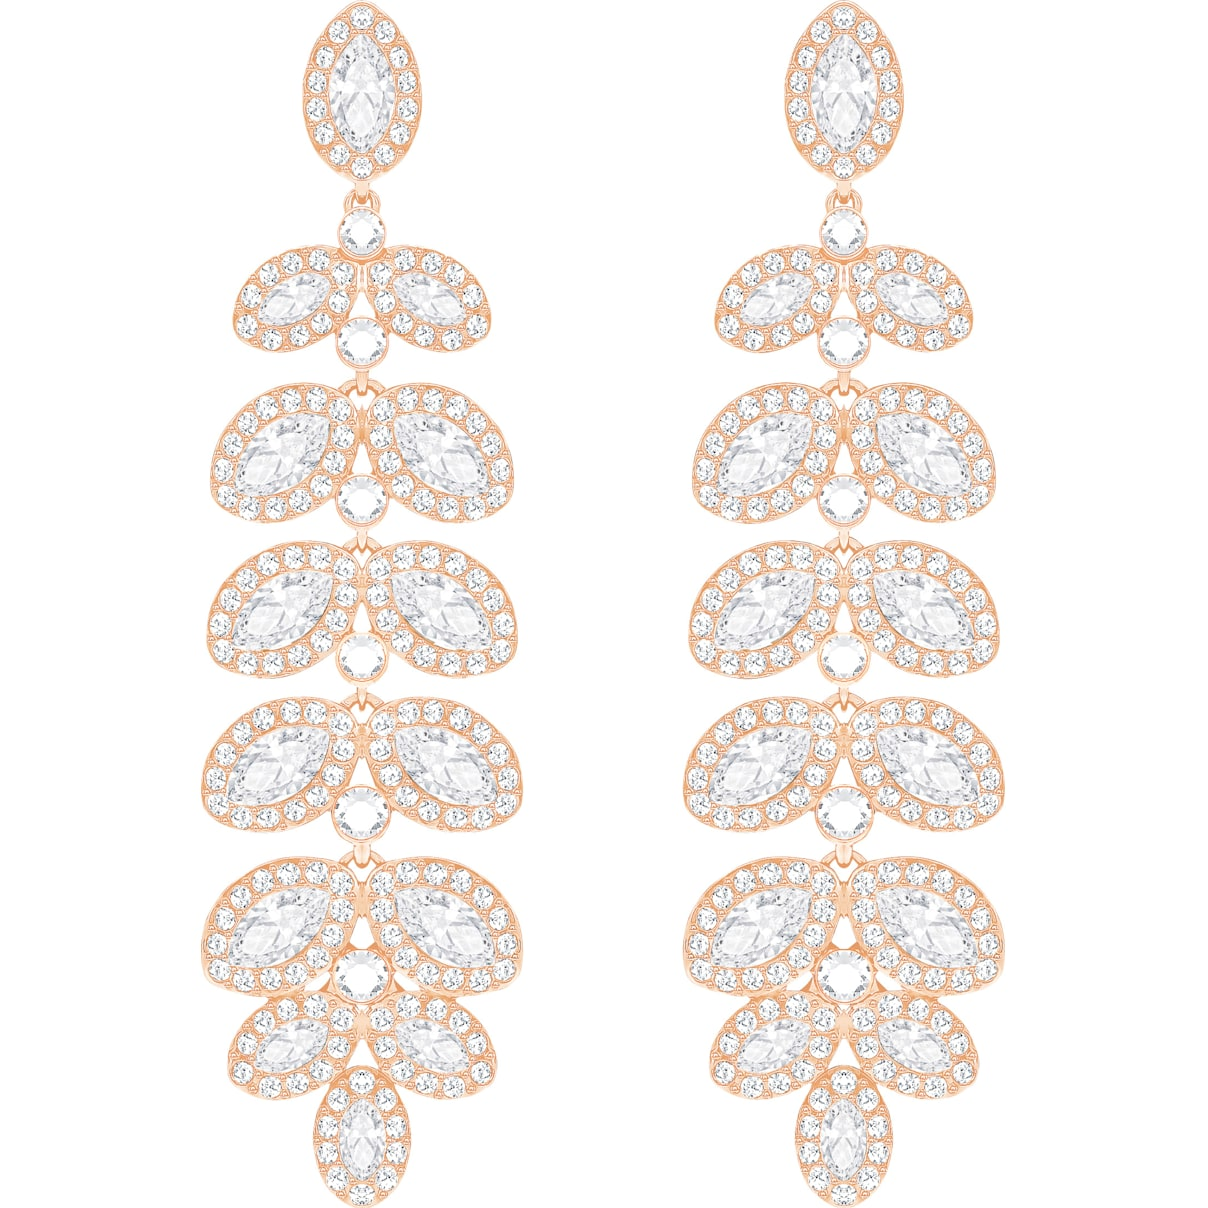 Swarovski Baron Pierced Earrings, White, Rose-gold tone plated